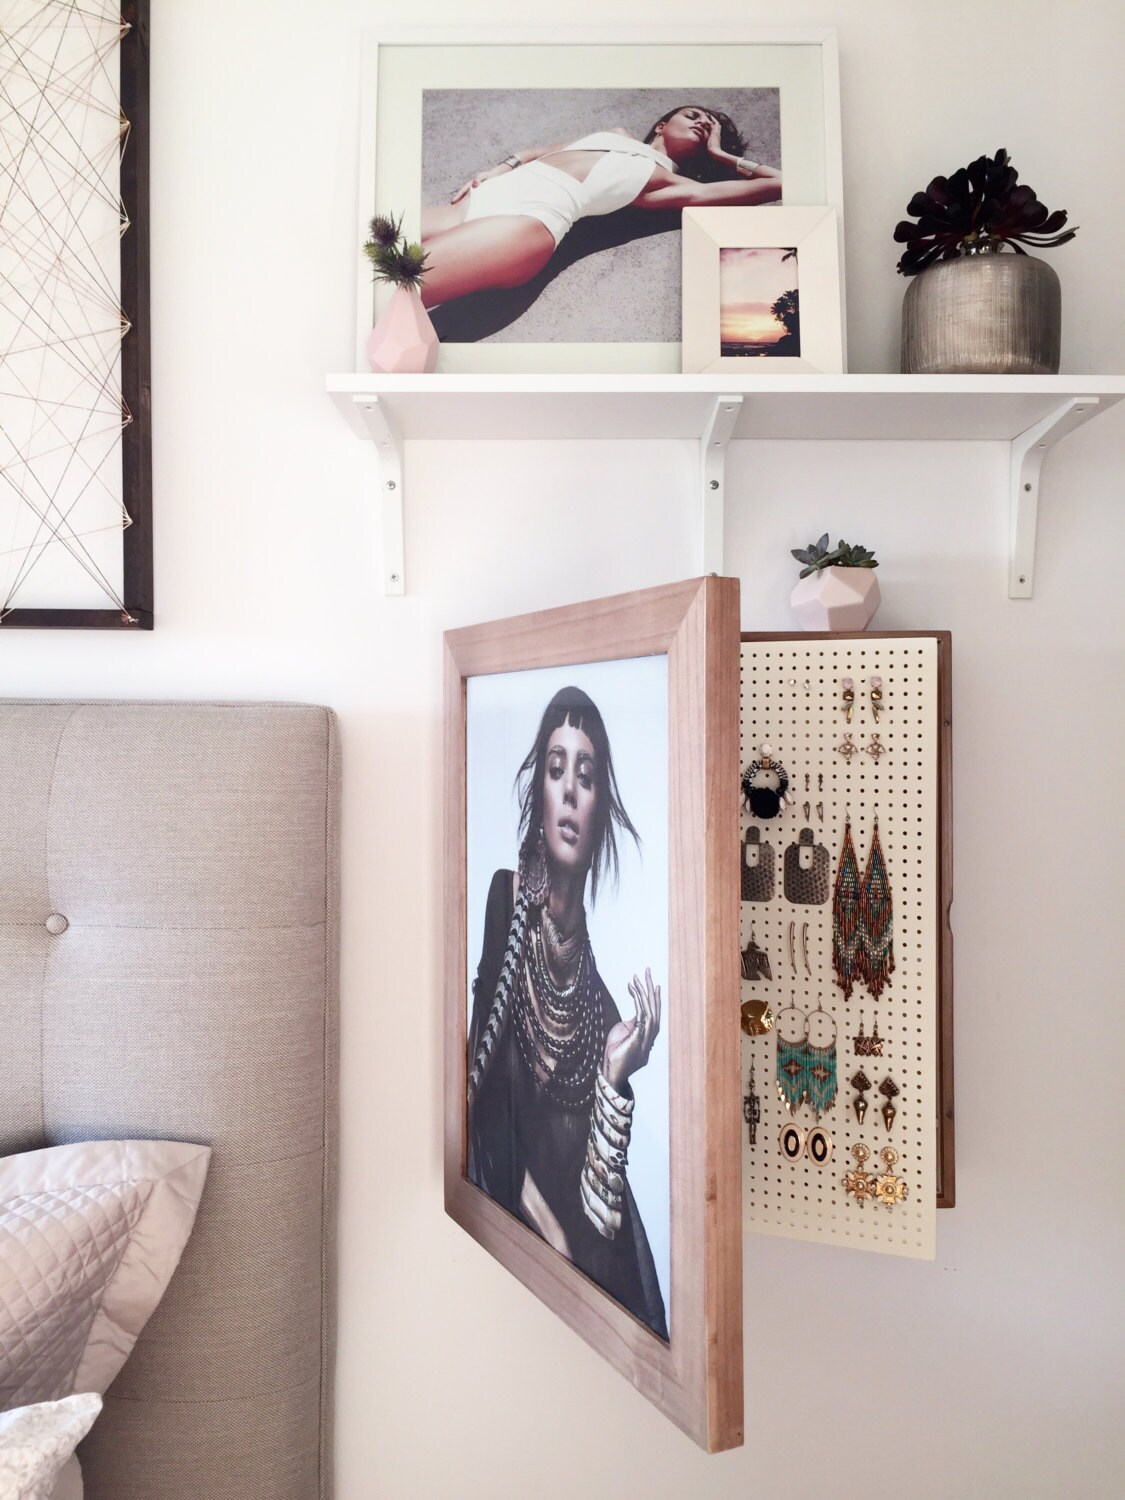 wall mounted jewelry organizer photo frame by bleachla on etsy. Black Bedroom Furniture Sets. Home Design Ideas